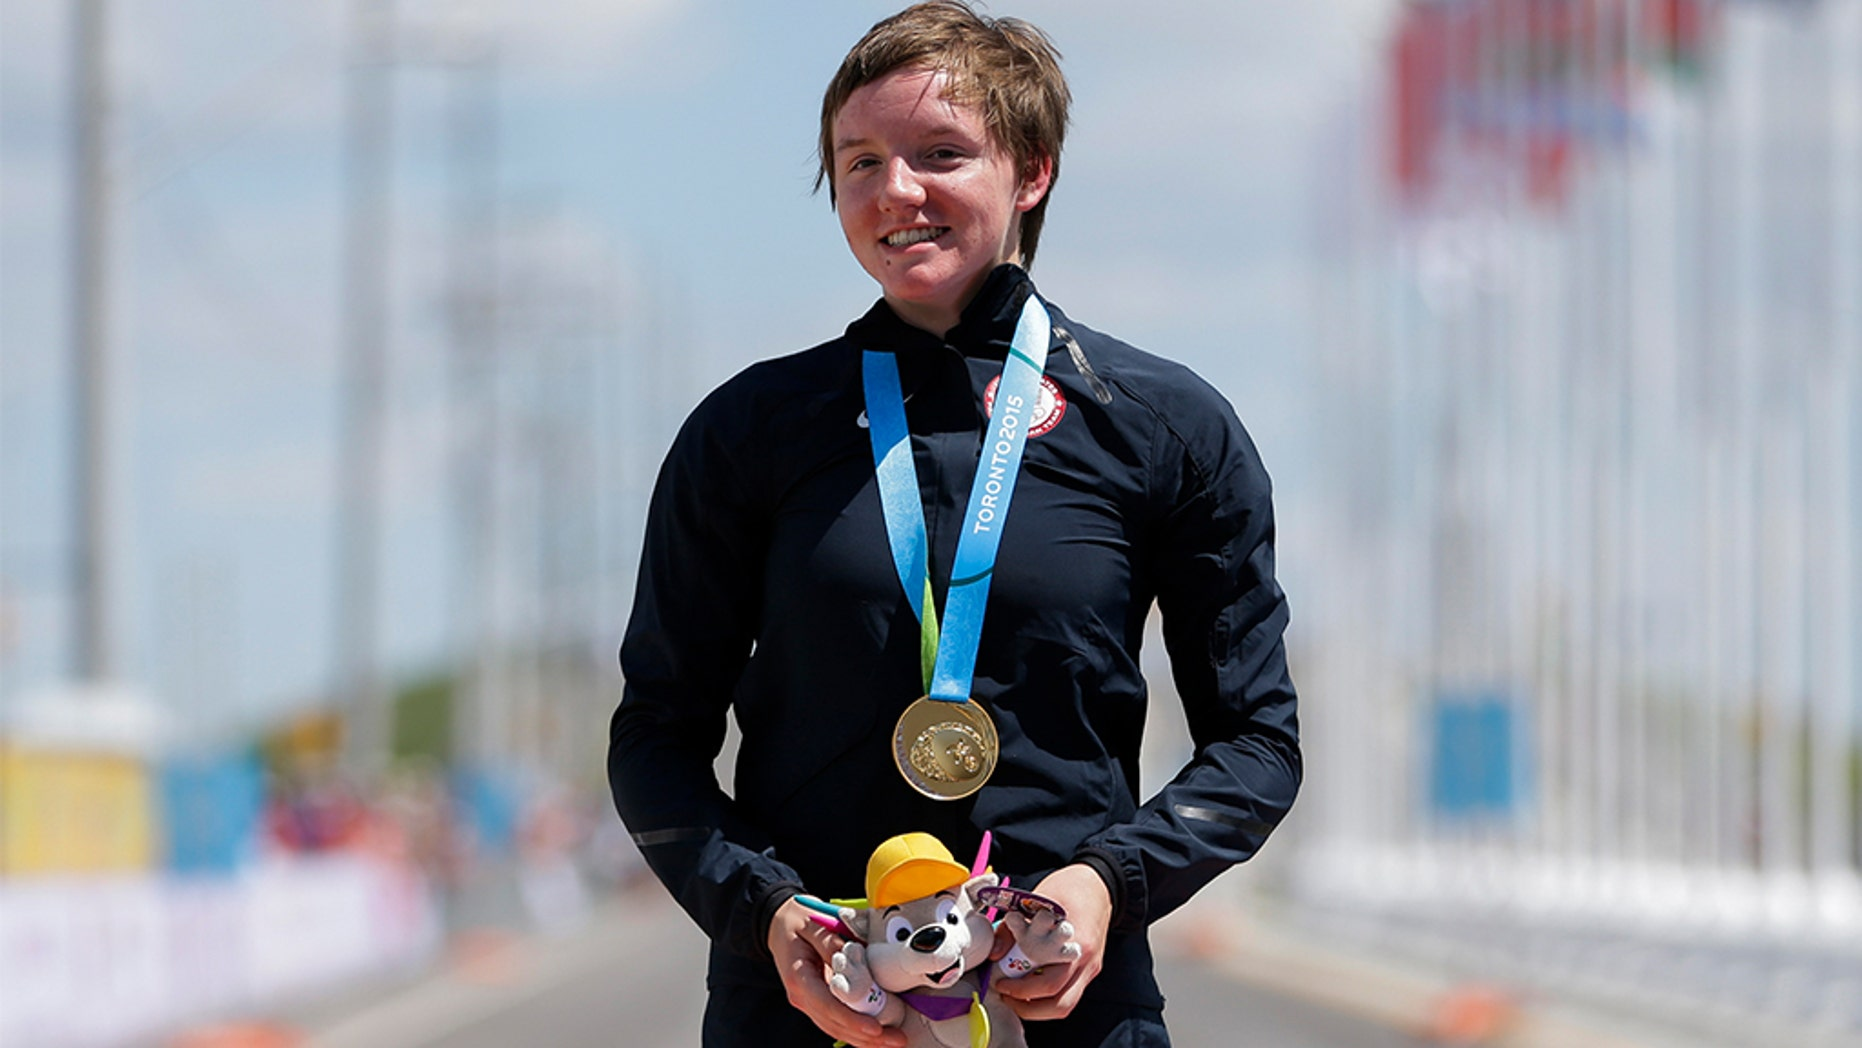 U.S. Olympic china medalist Kelly Catlin, who competed in a 2016 Summer Games, was found passed in her home on Friday, her father confirmed.